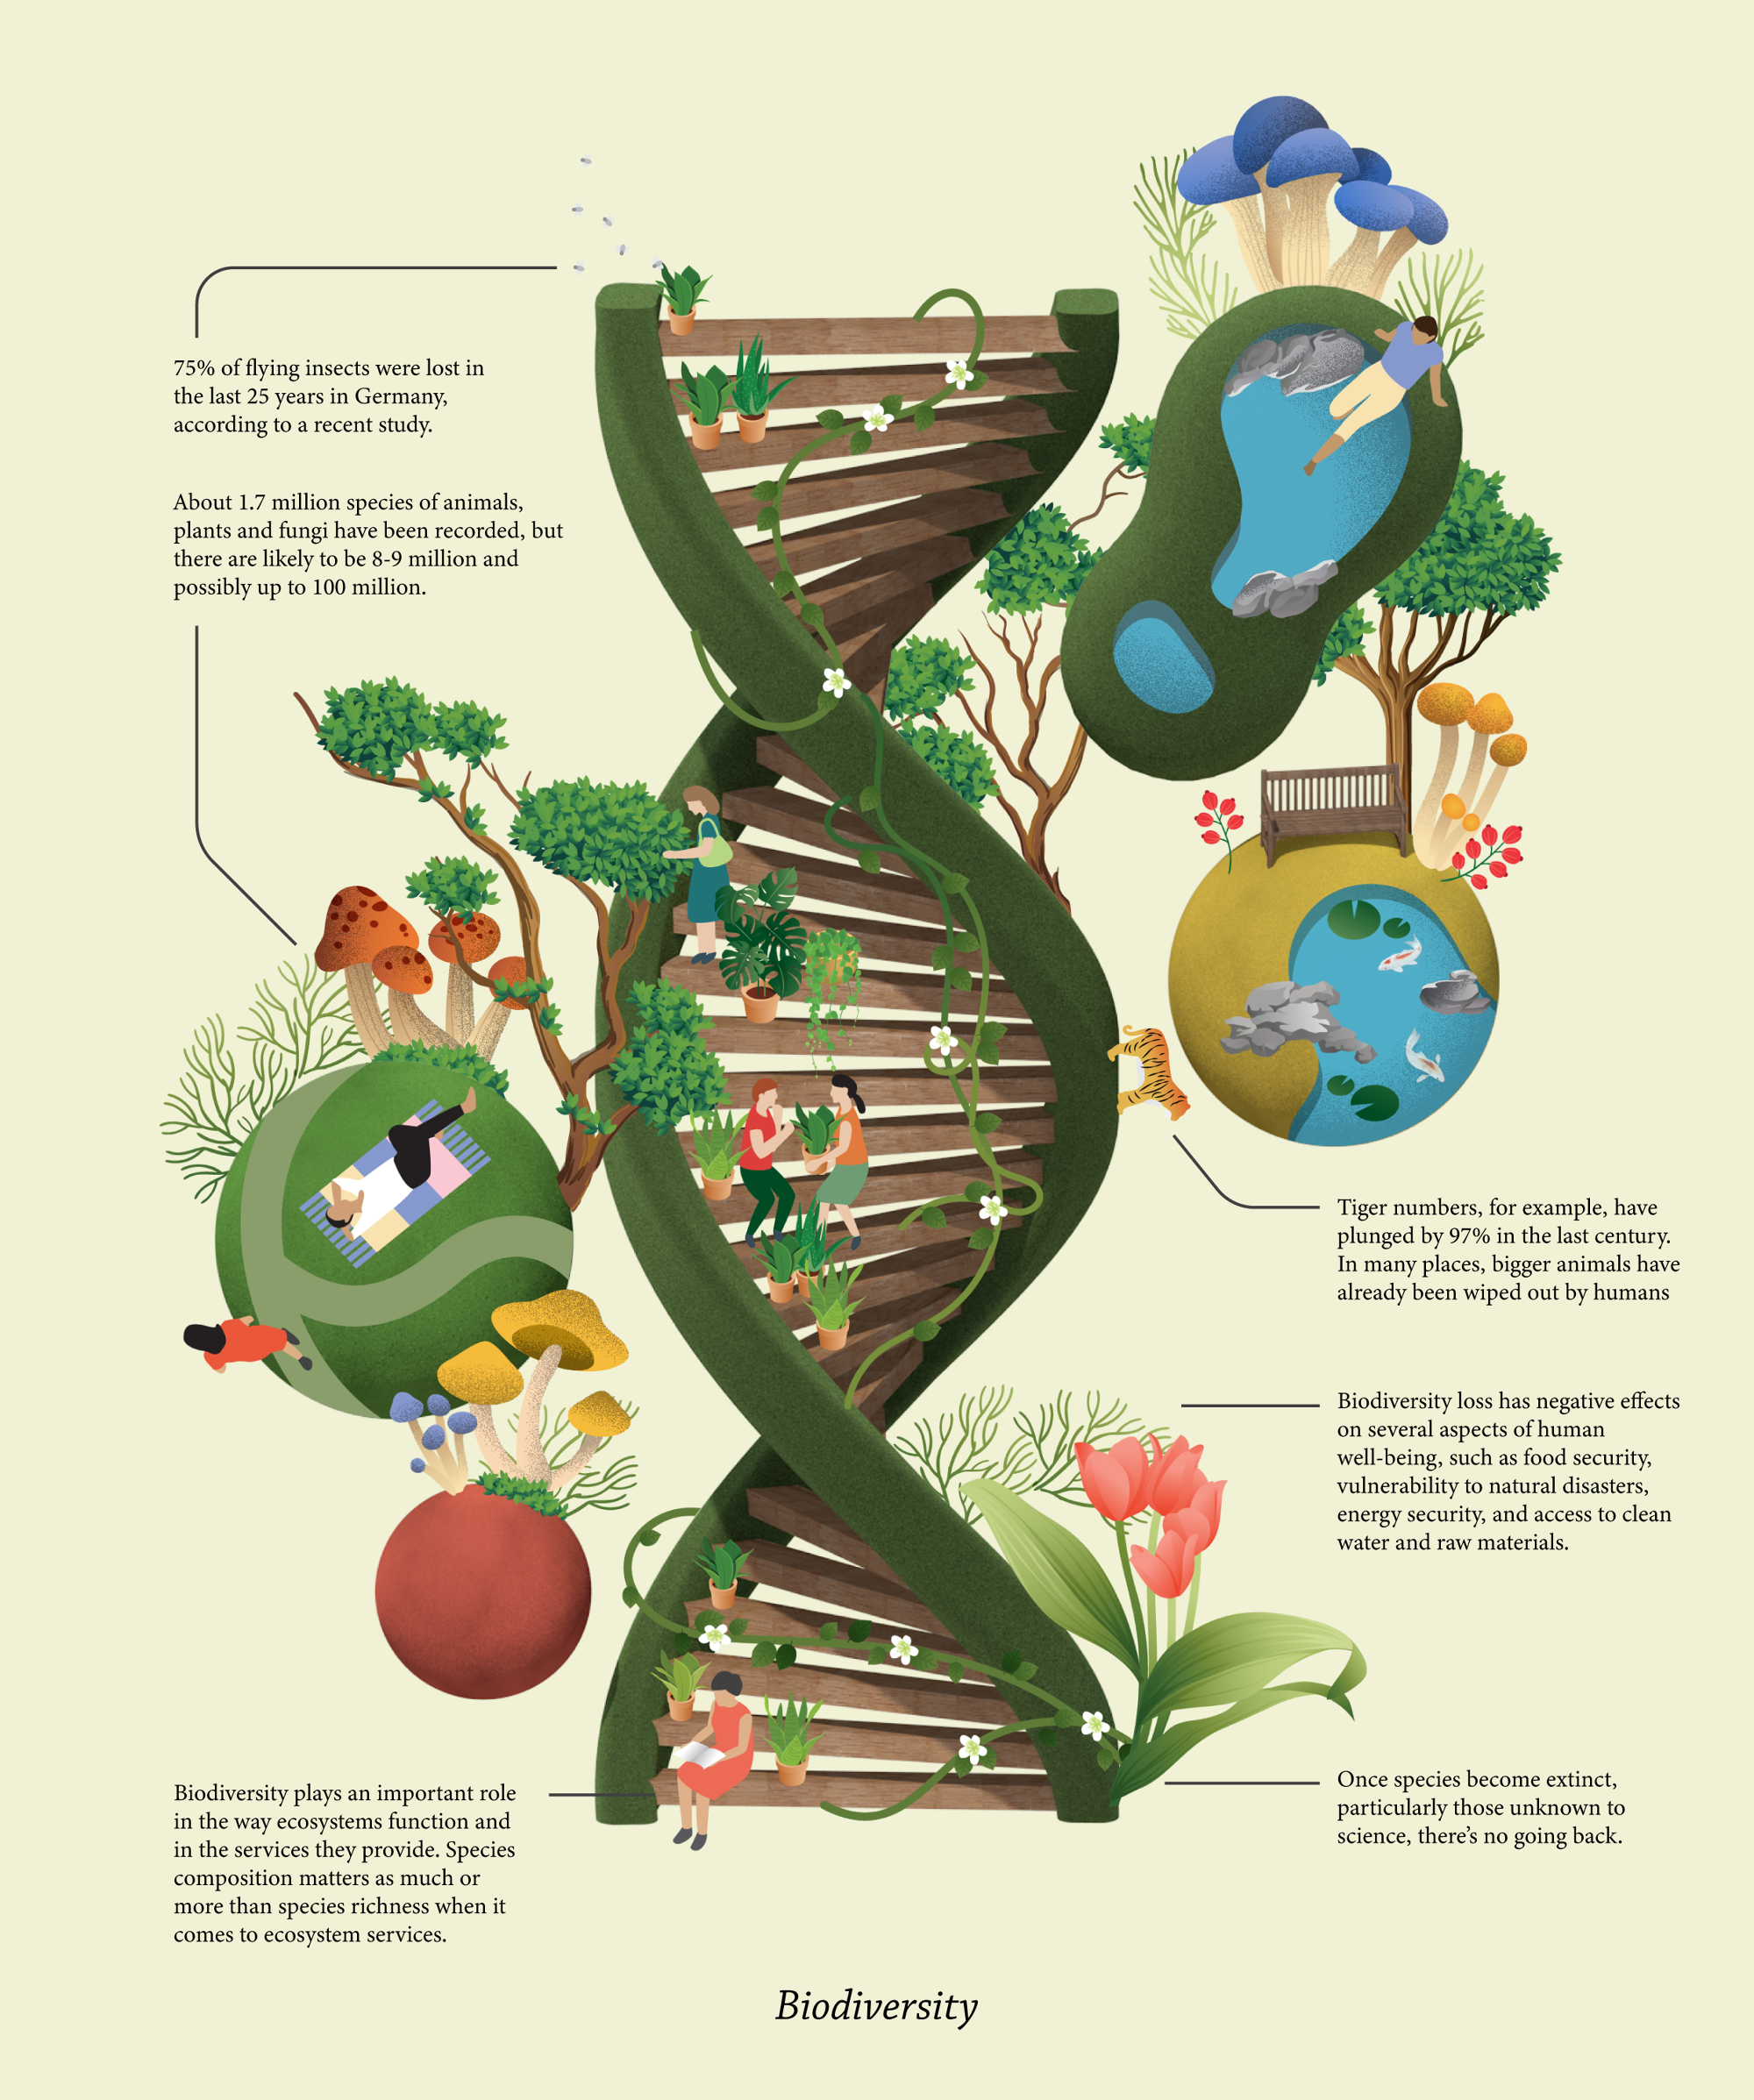 illustrated image of DNA with lots of trees, greenery, people, and other environmental imagery within and around it